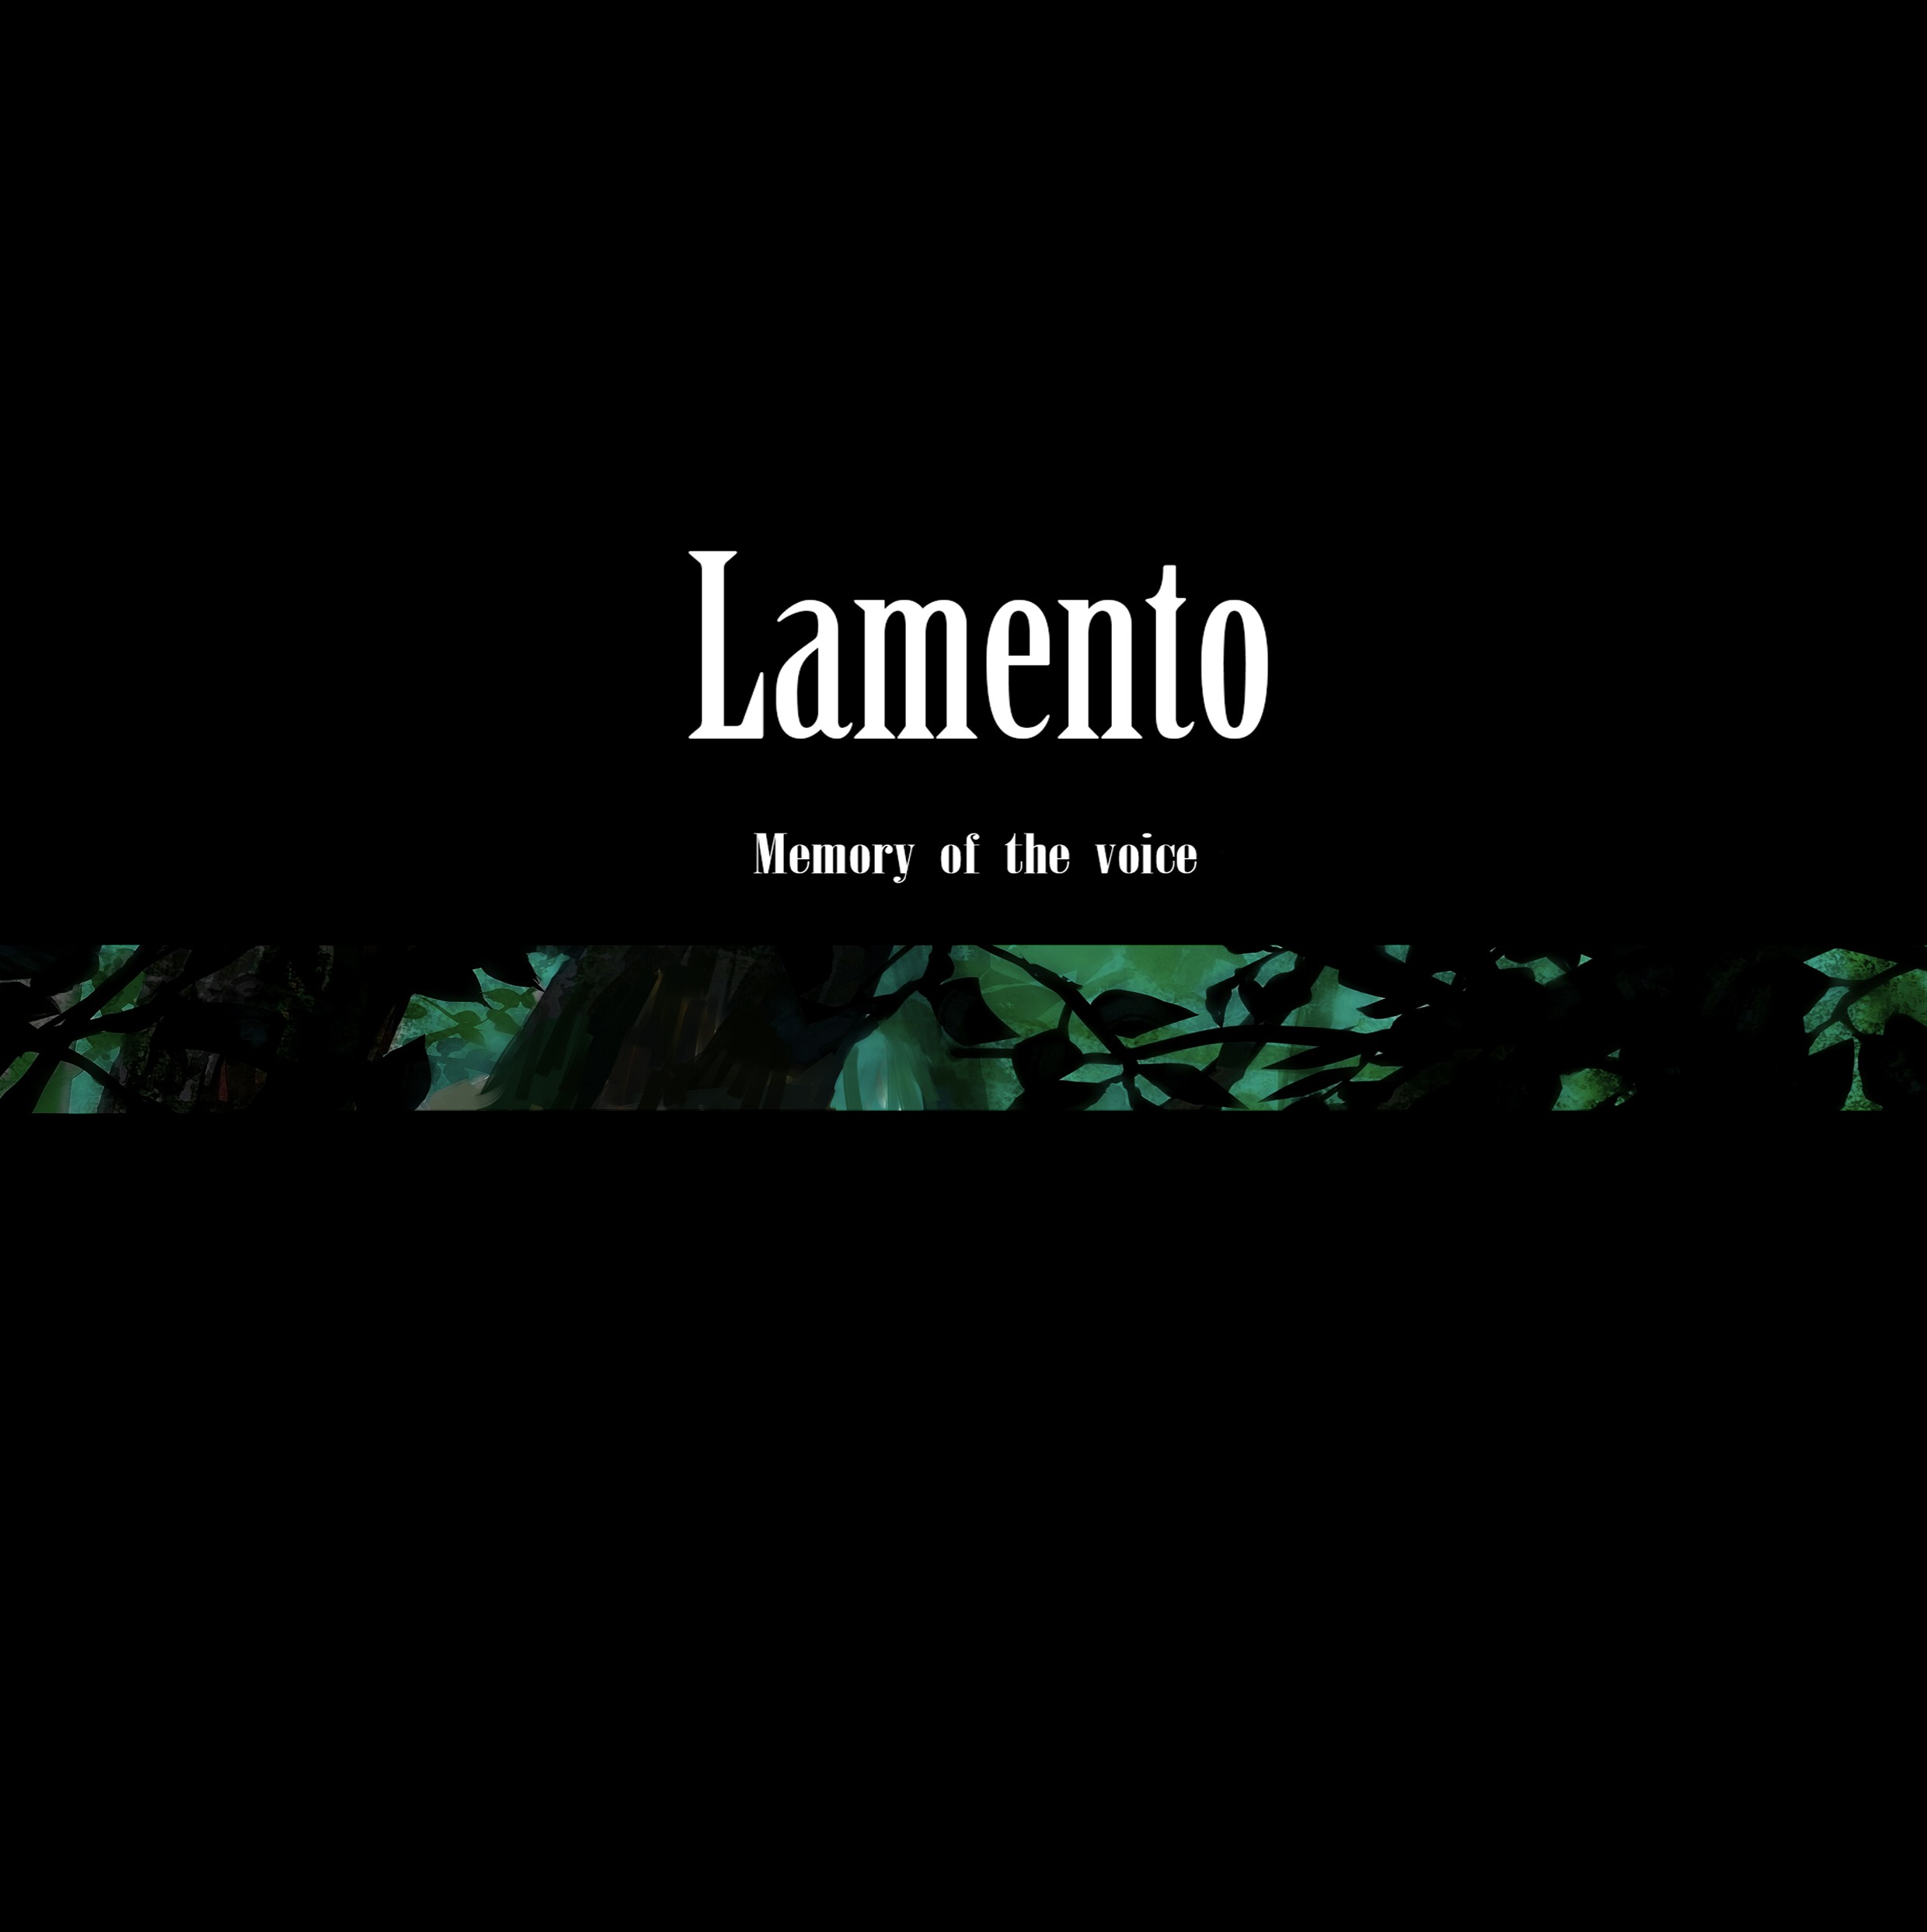 Lamento_ memory of the voice